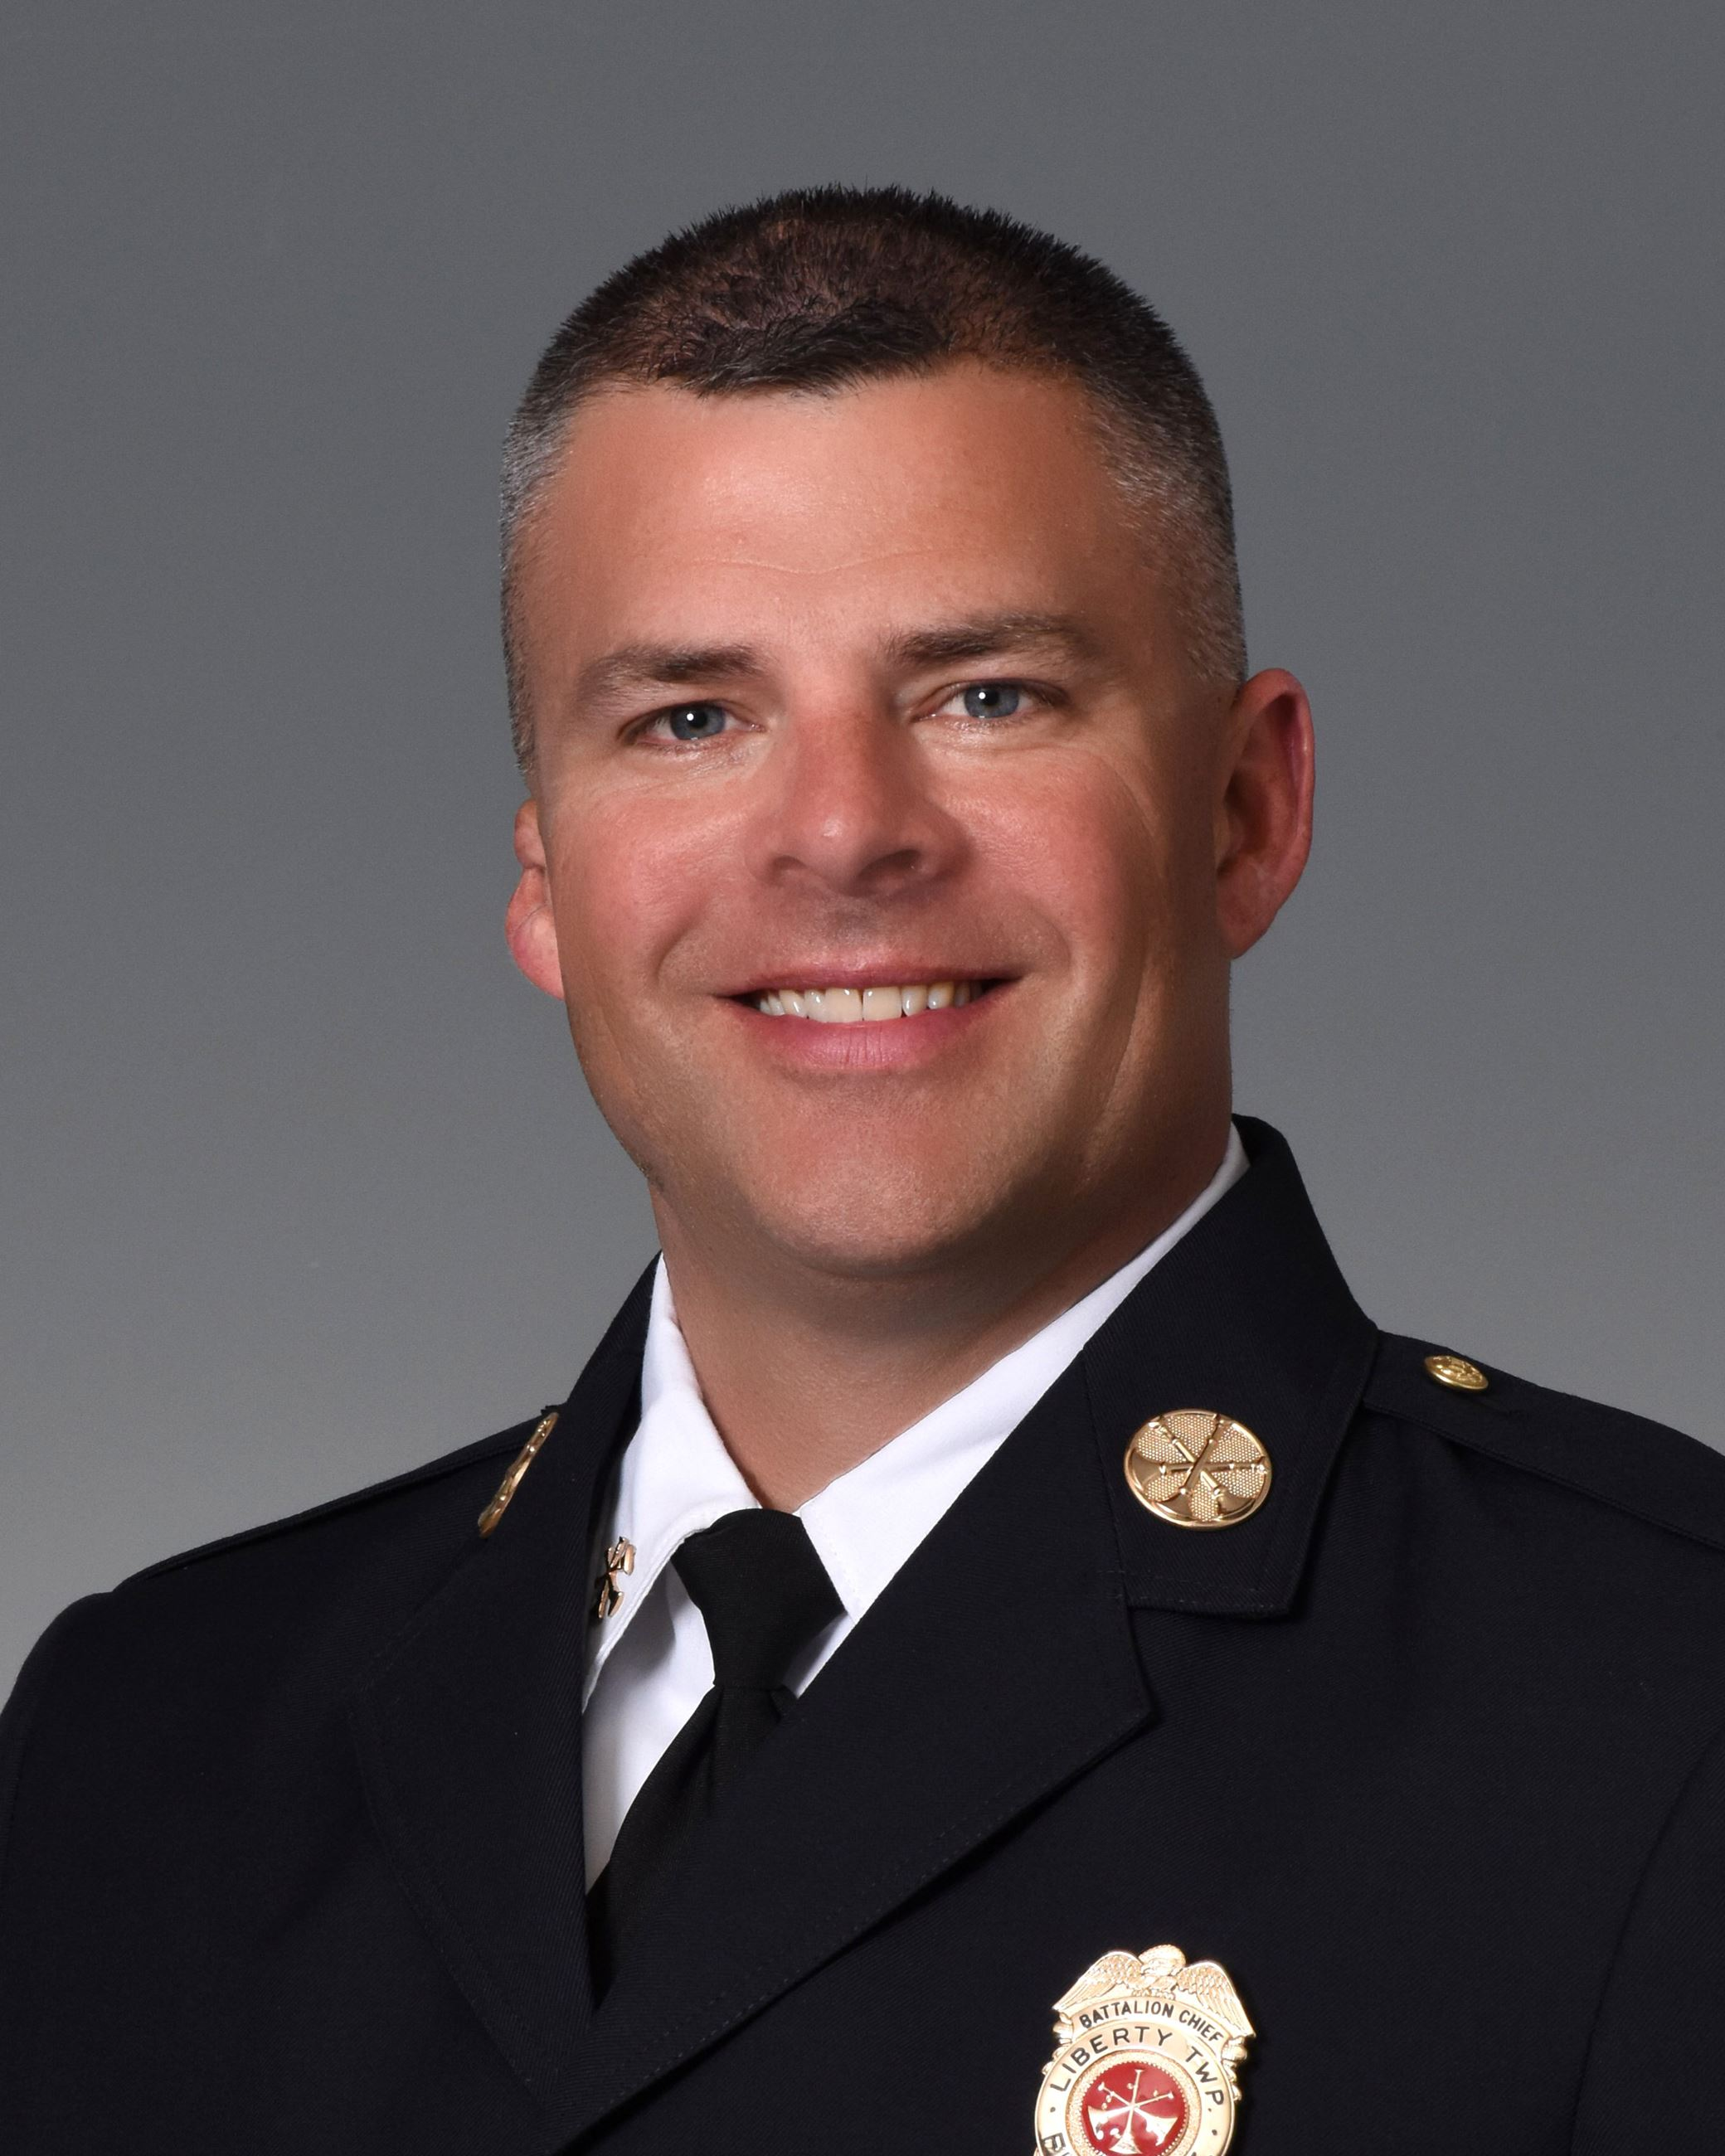 Battalion Chief Robert Morton